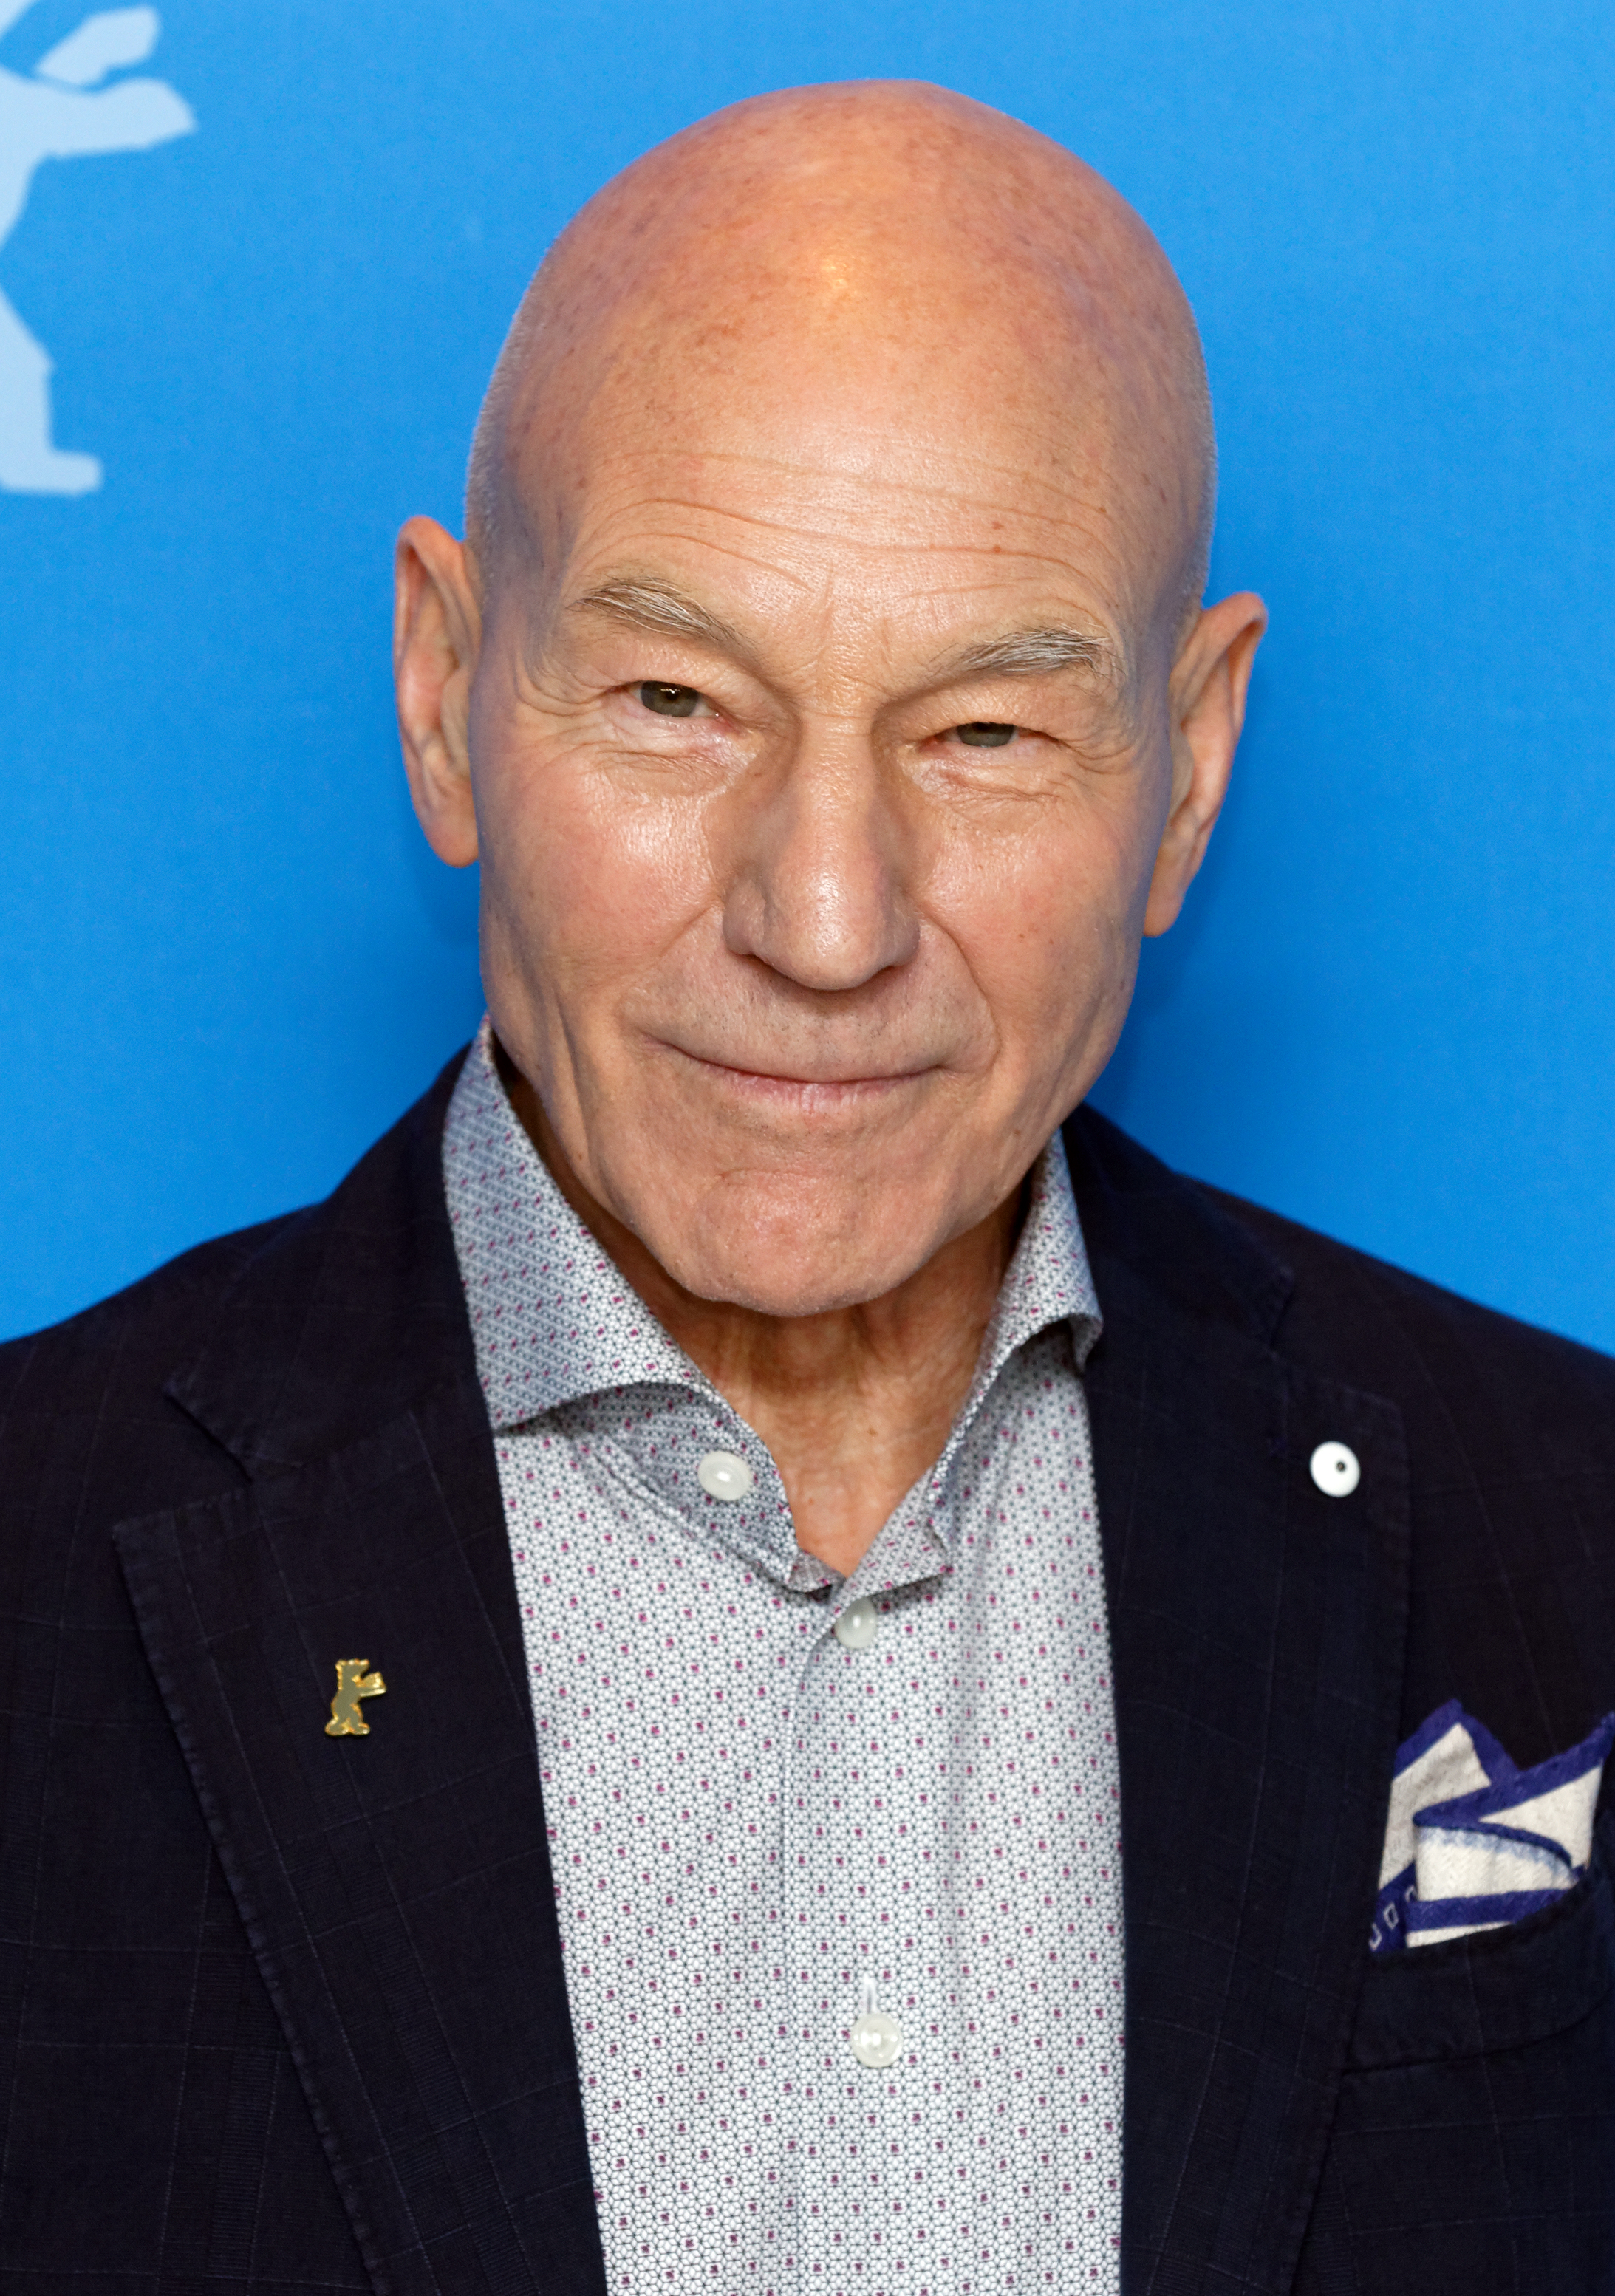 The 78-year old son of father Alfred Stewart and mother Gladys Stewart Patrick Stewart in 2018 photo. Patrick Stewart earned a  million dollar salary - leaving the net worth at 60 million in 2018